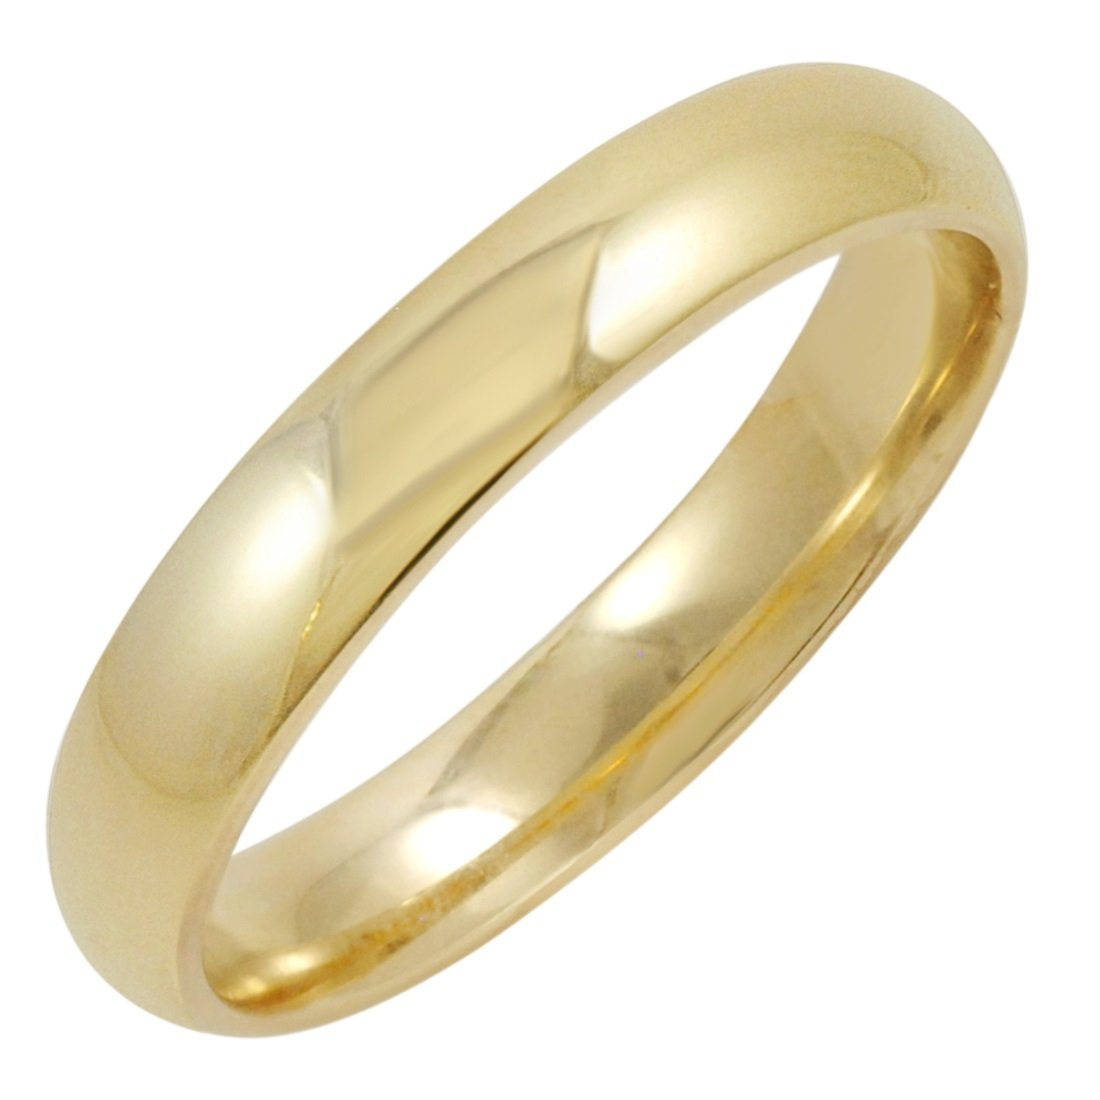 Men's 14K Yellow Gold 4mm Comfort Fit Plain Wedding Band (Available Ring Sizes 8-12 1/2) Size 8 by Oxford Ivy (Image #1)